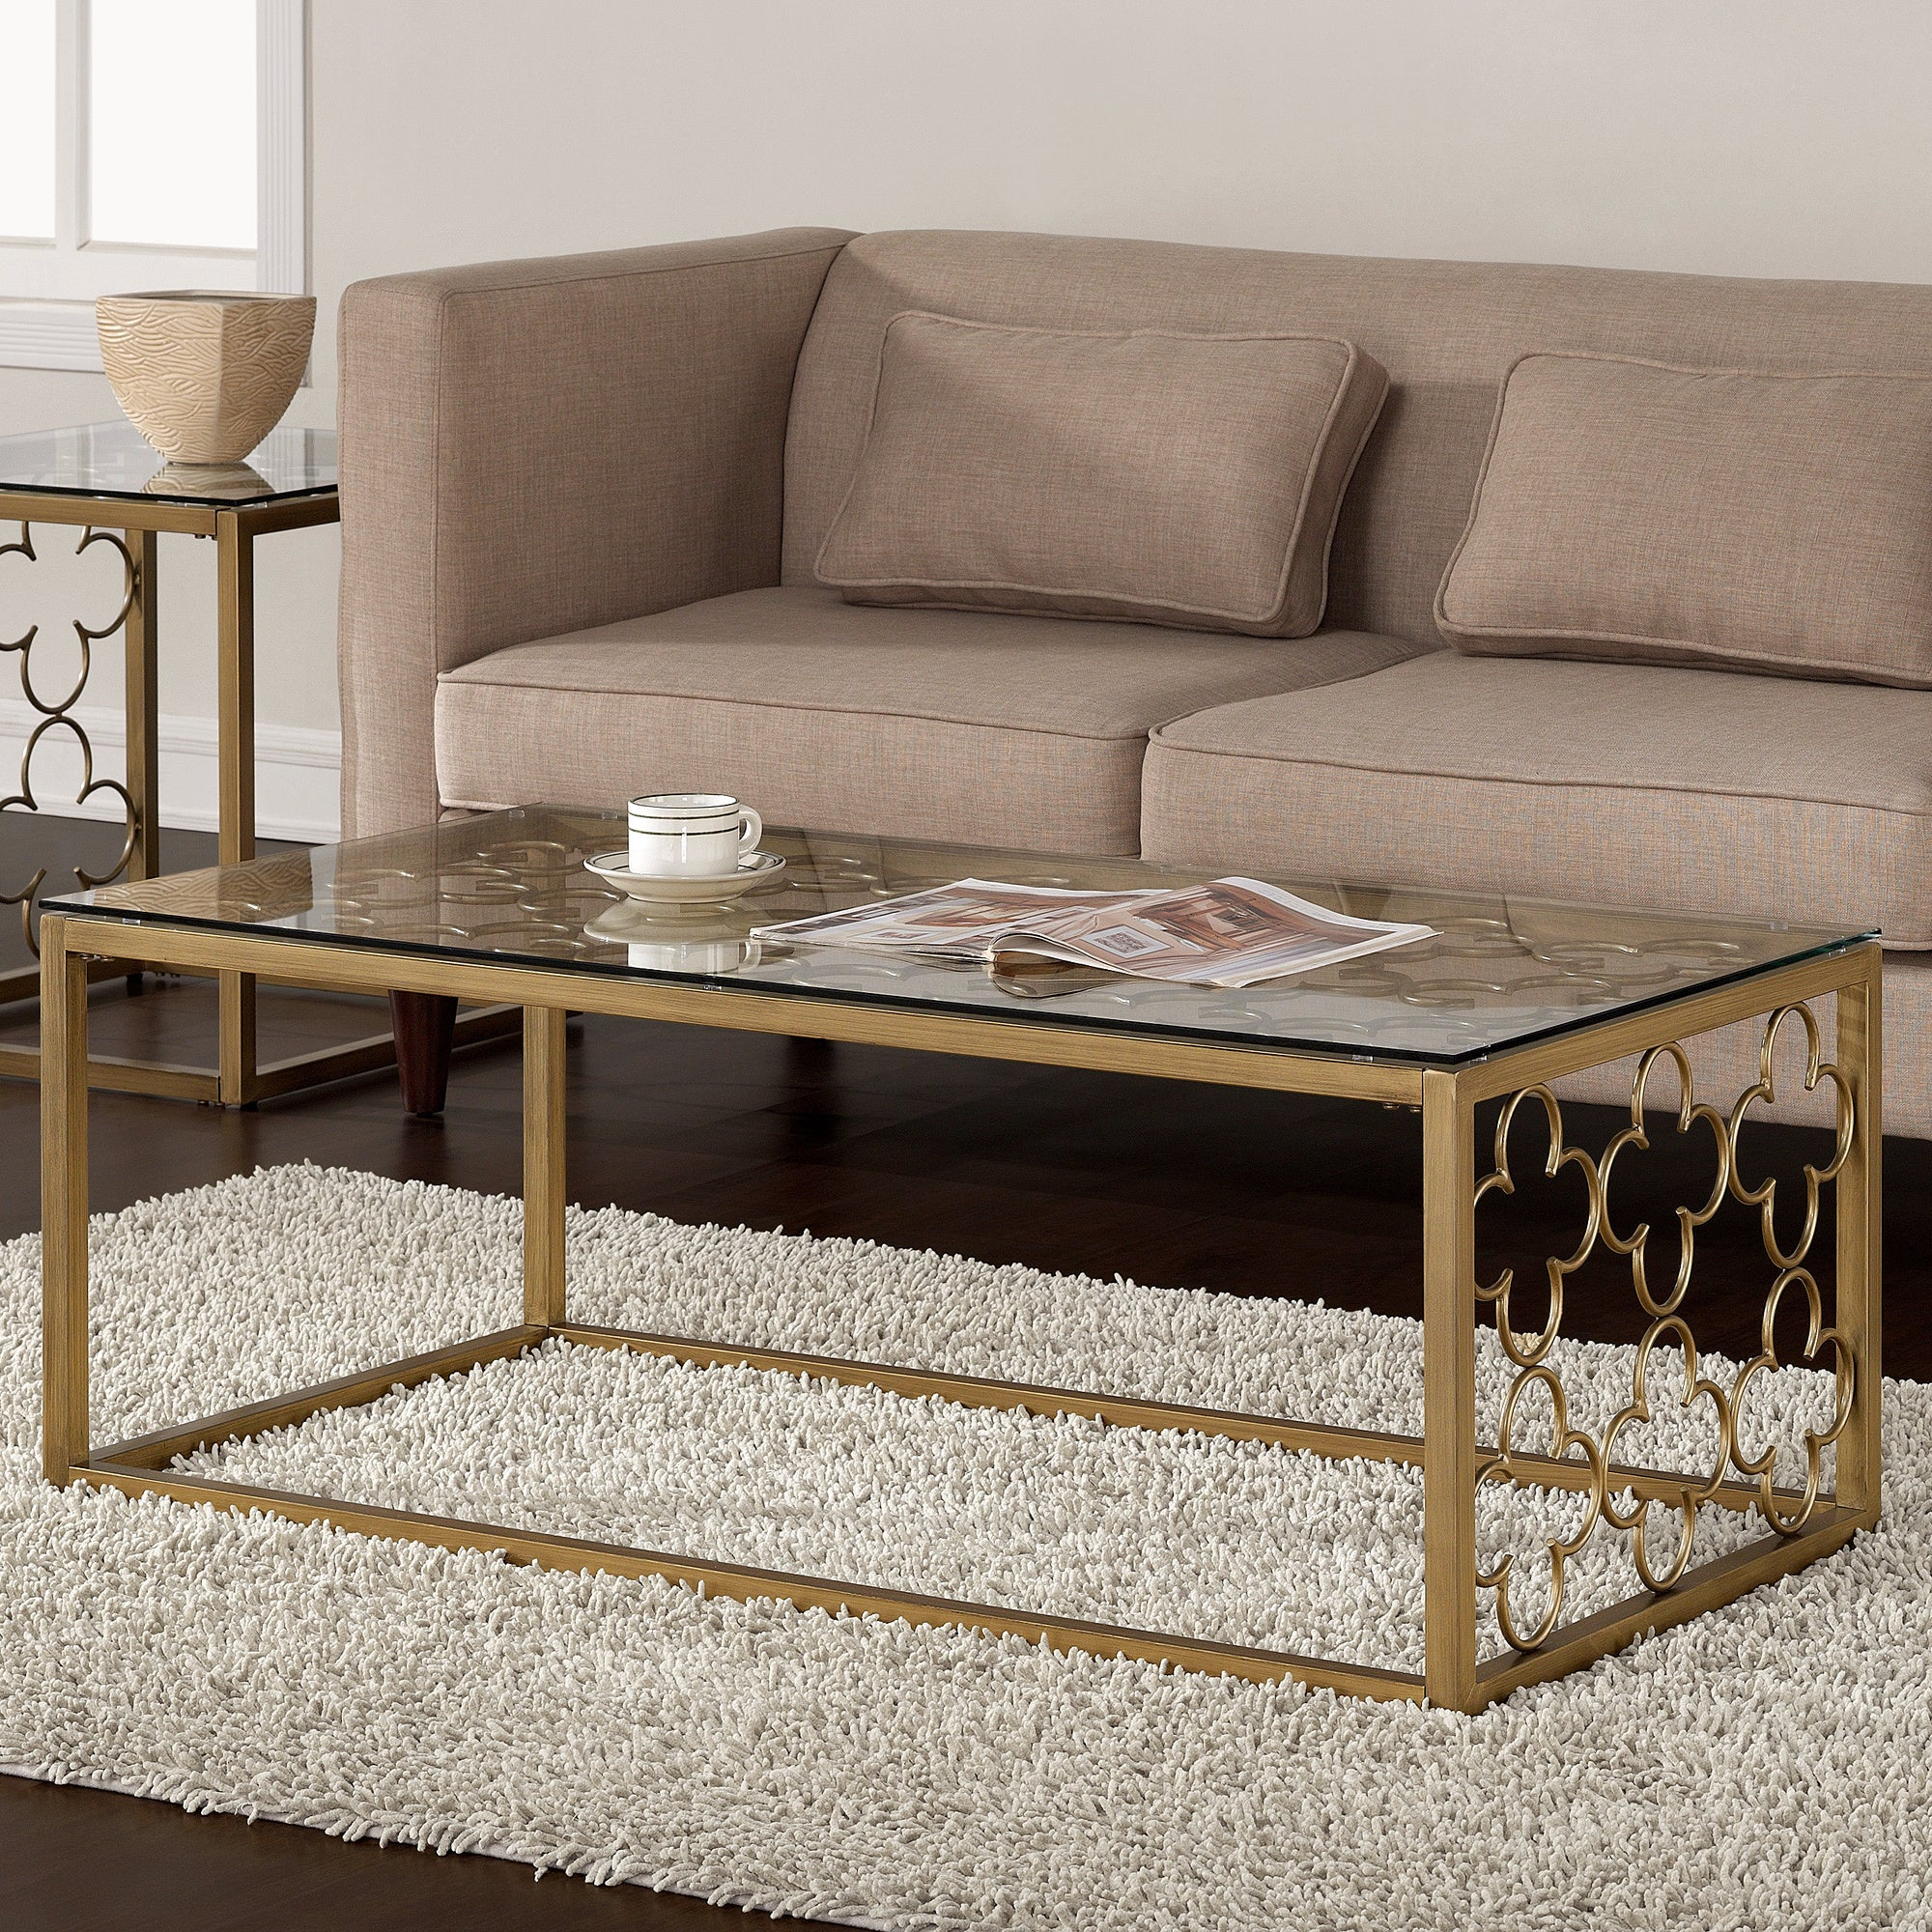 Shop The Curated Nomad Quatrefoil Goldtone Metal And Glass Coffee Table    On Sale   Free Shipping Today   Overstock.com   20254056